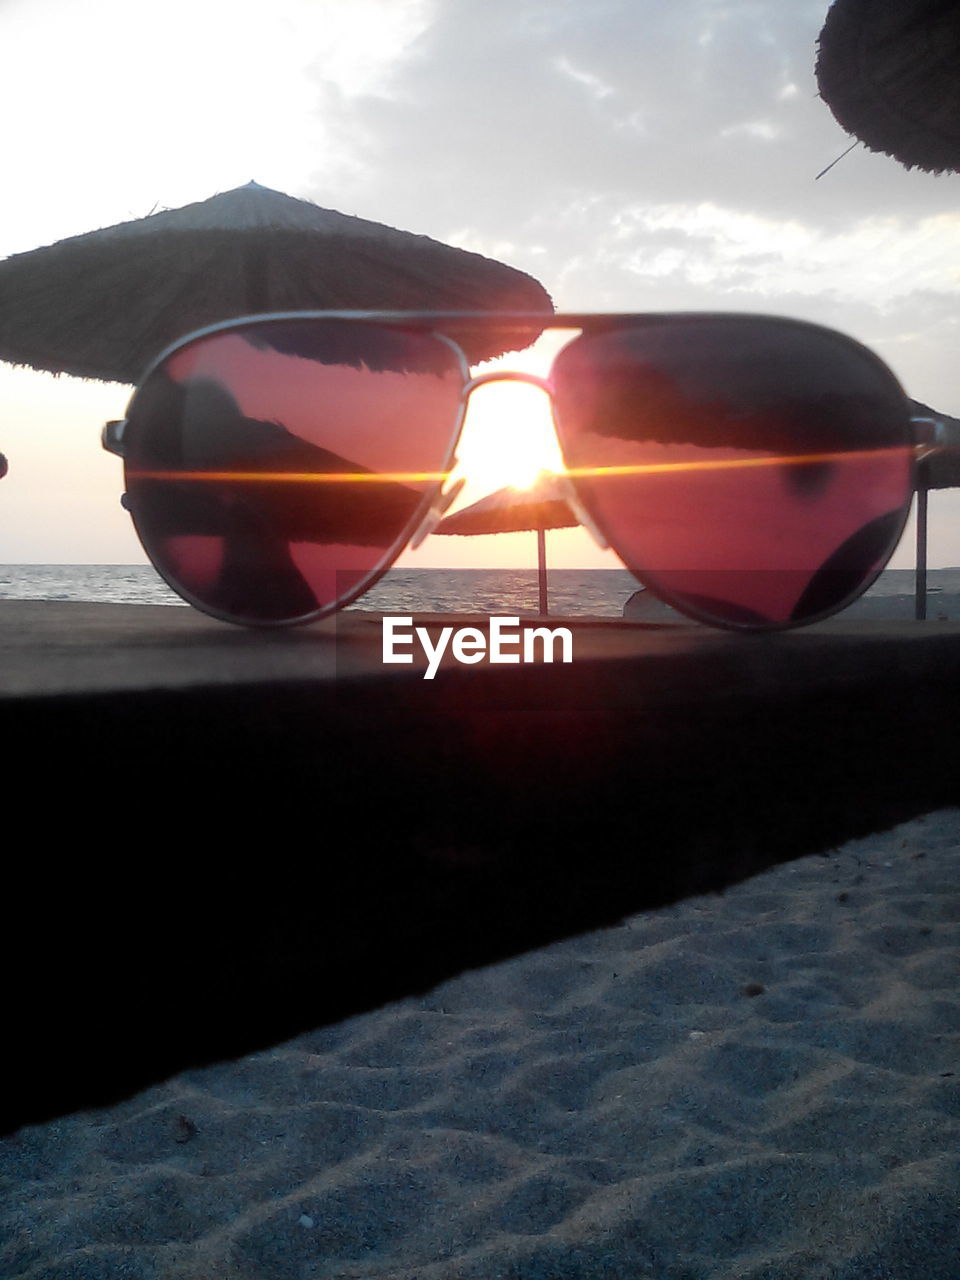 sunglasses, sunset, sky, nature, water, sunlight, outdoors, sea, tranquil scene, beauty in nature, beach, tranquility, sun, no people, scenics, sand, day, close-up